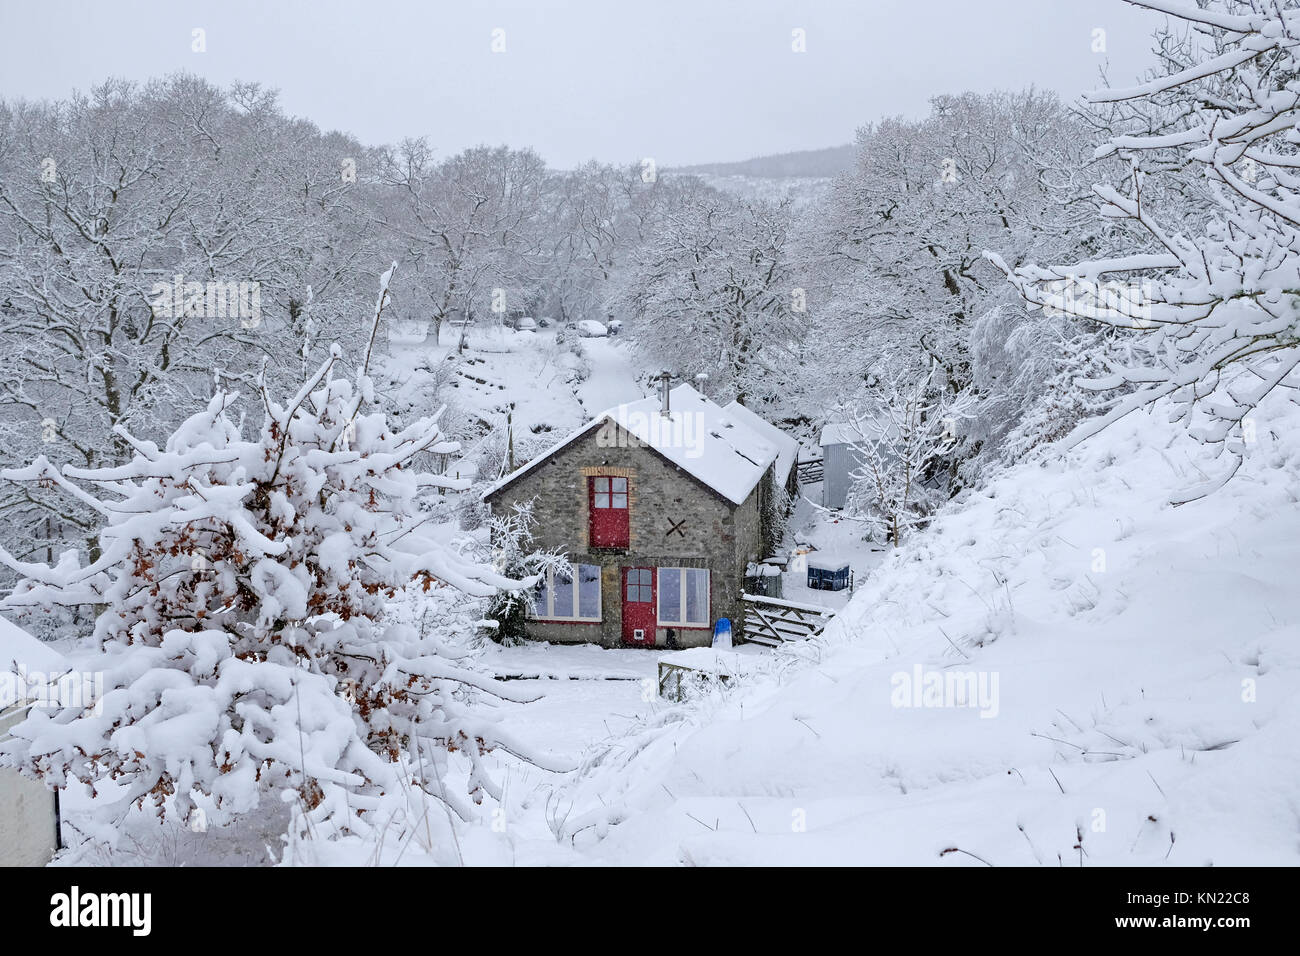 Snowy Scene With Cottage Stock Photos Amp Snowy Scene With